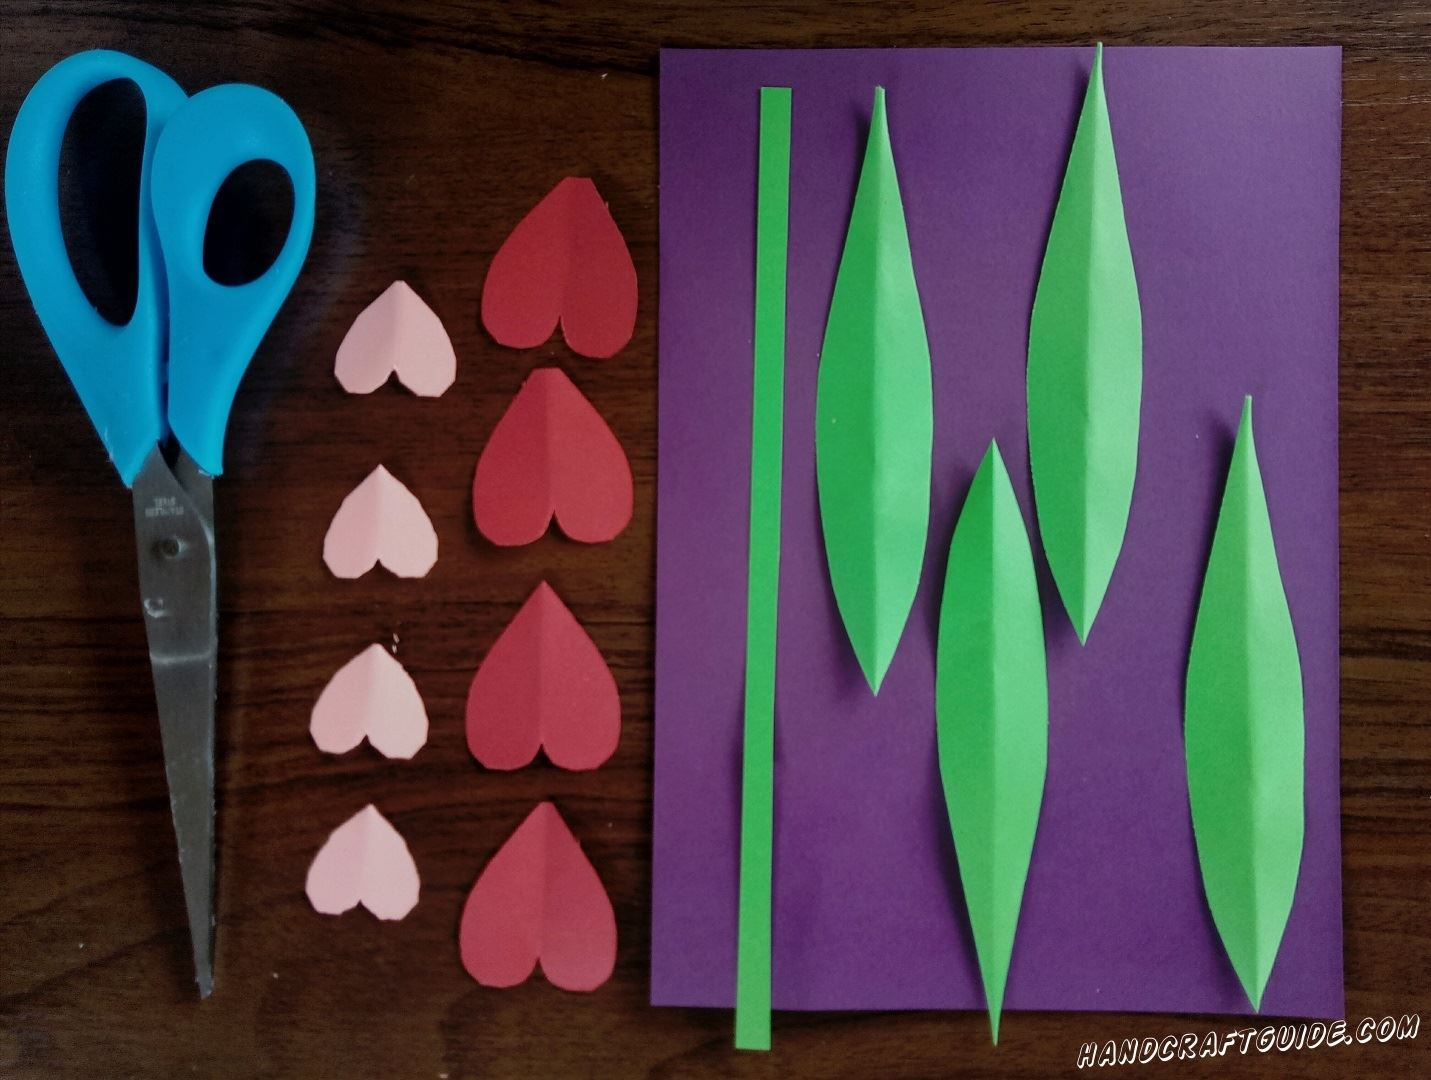 Cut out hearts, leaves and stem, as in the photo.